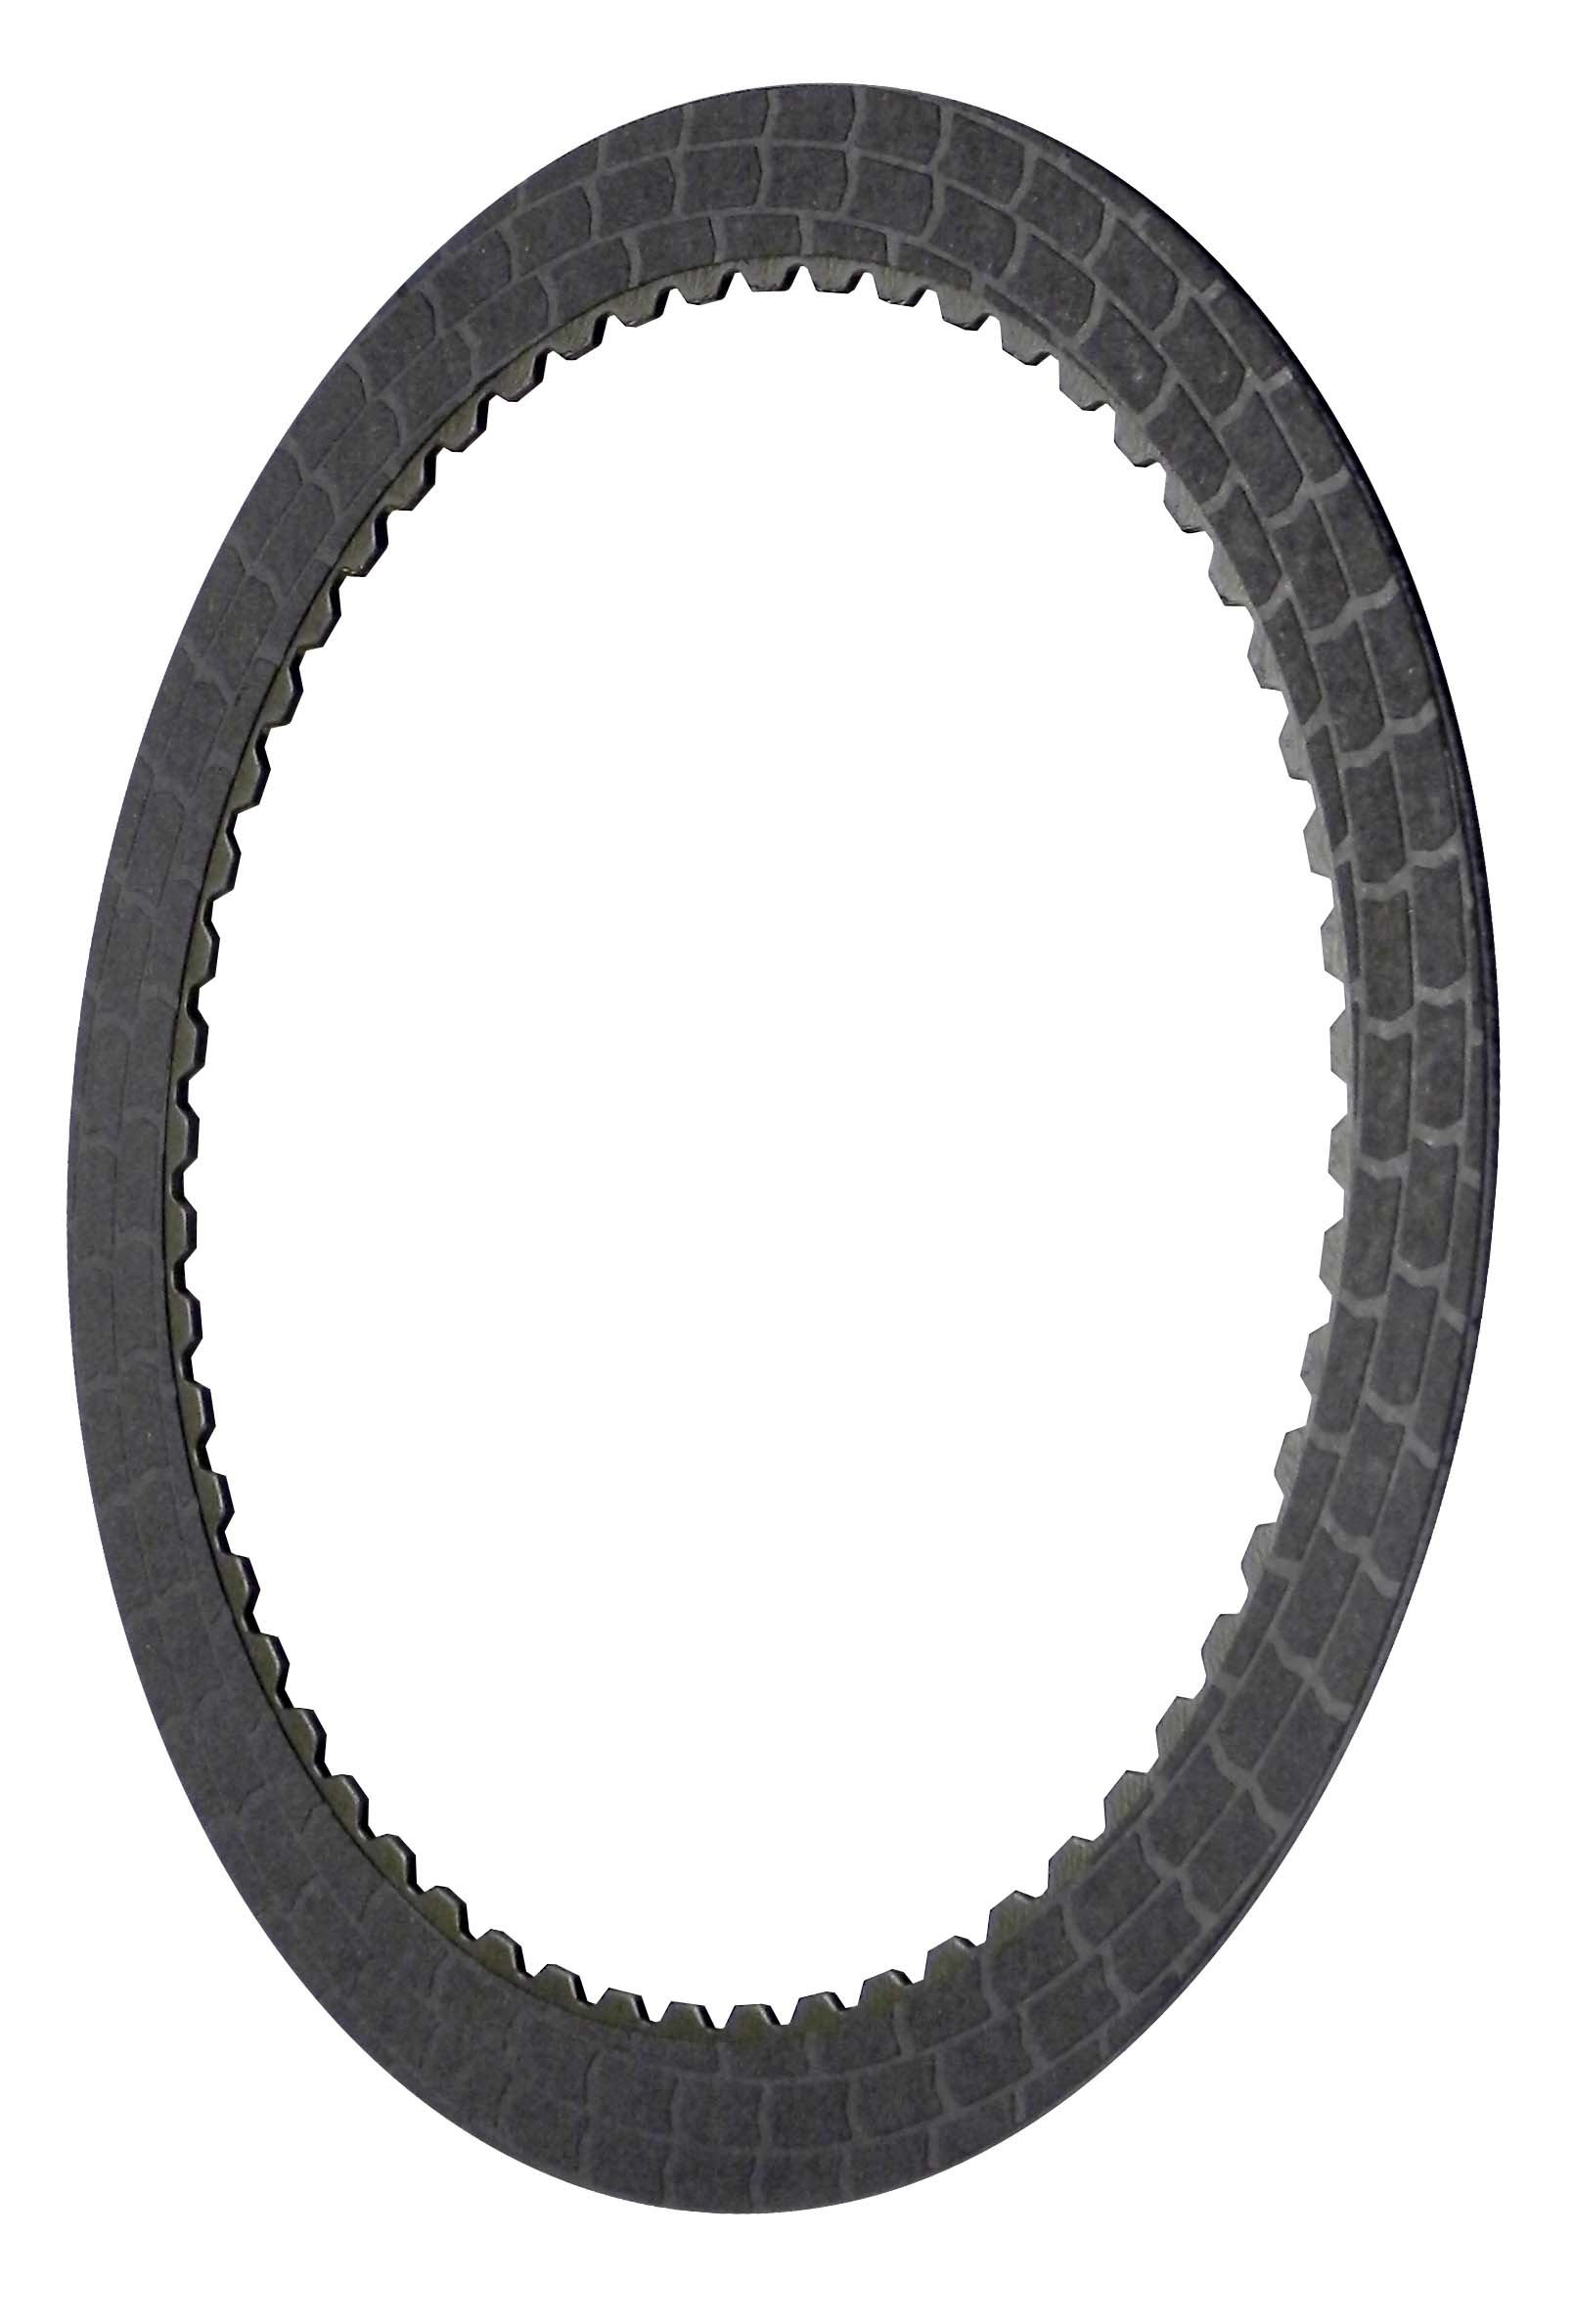 RH572740 | 2004-ON Friction Clutch Plate (HT) Hybrid Technology K3 09G Proprietary High Energy (HT)